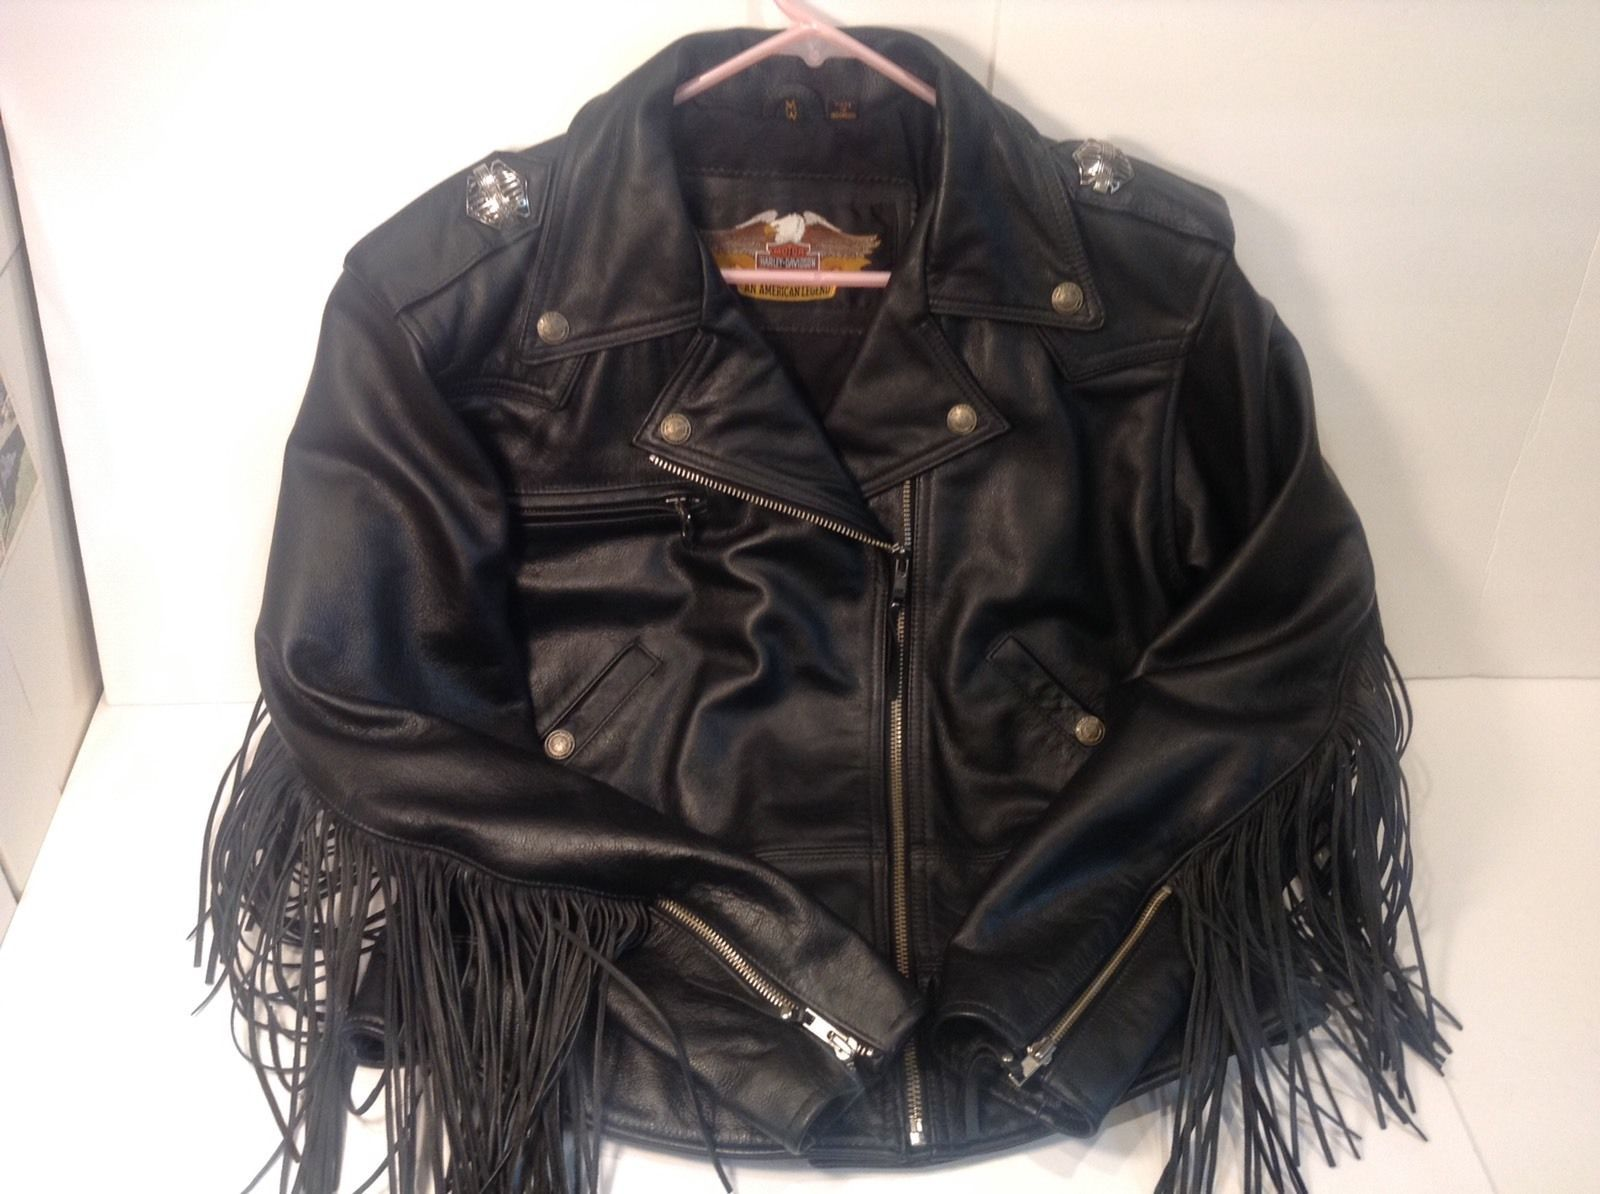 71 00 37 Bids End Date May 27 21 45bid Now Add To Watch Listbuy This On Ebay Category Women S Clothing Leather Jacket Jackets Harley Davidson Women [ 1194 x 1600 Pixel ]